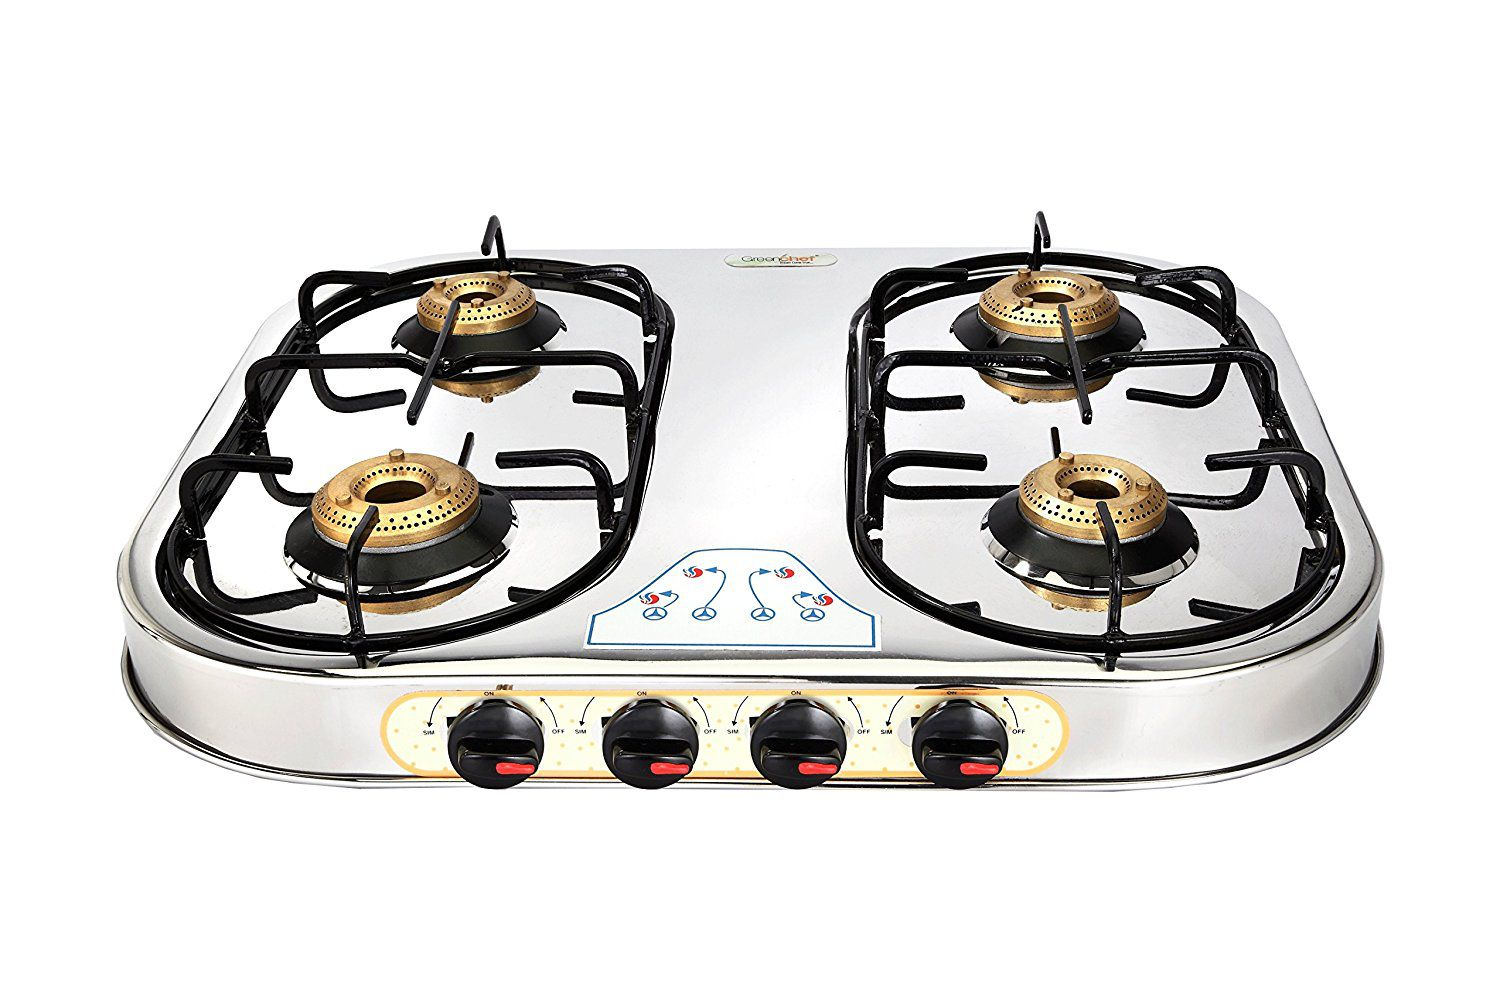 chef select gas oven manual